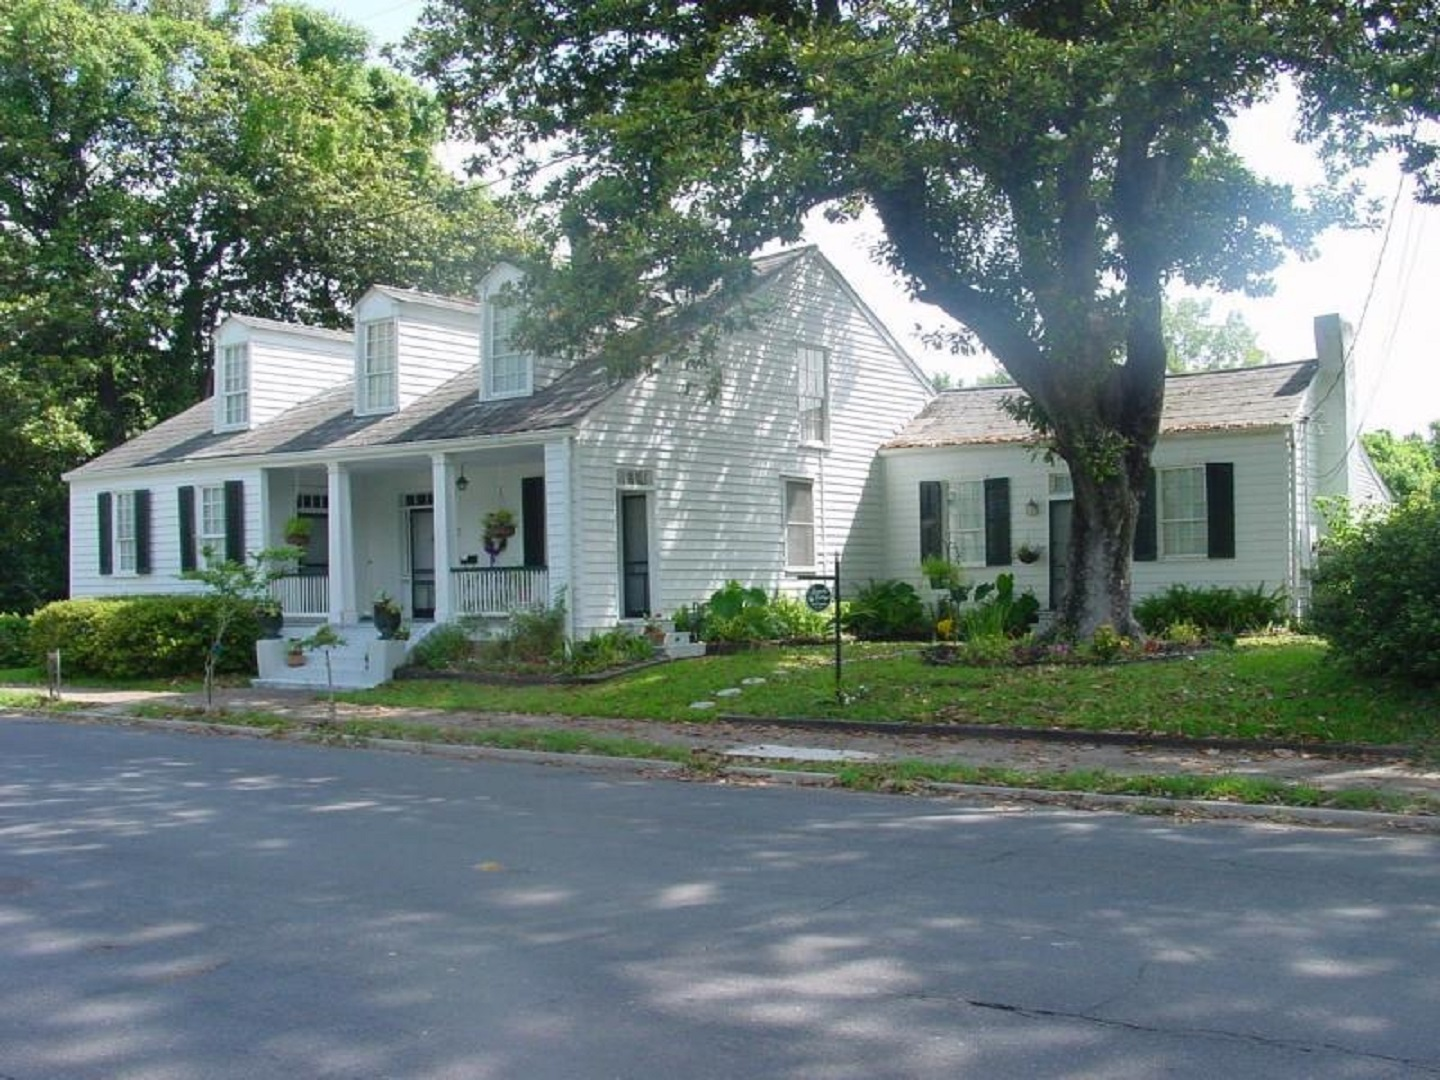 A residential street in front of a house at Magnolia Cottage Bed and Breakfast.